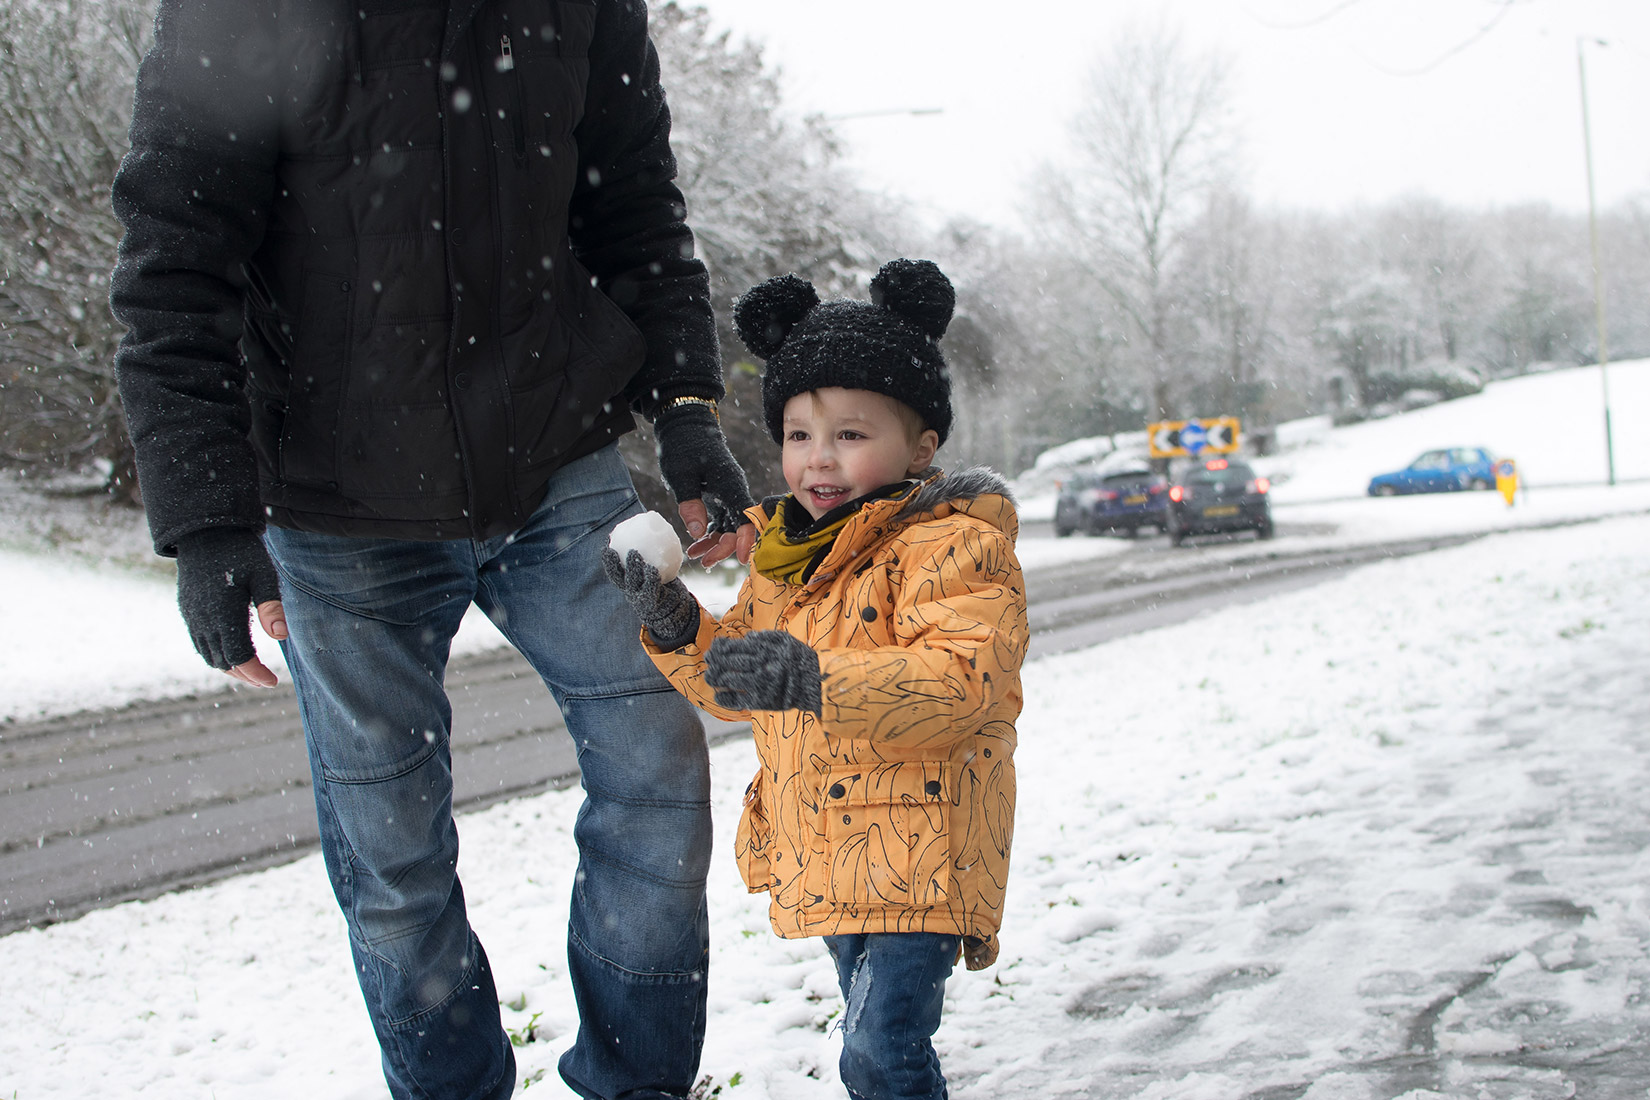 Young boy wearing Individual banana coat getting ready to throw a snowball at his Grandad